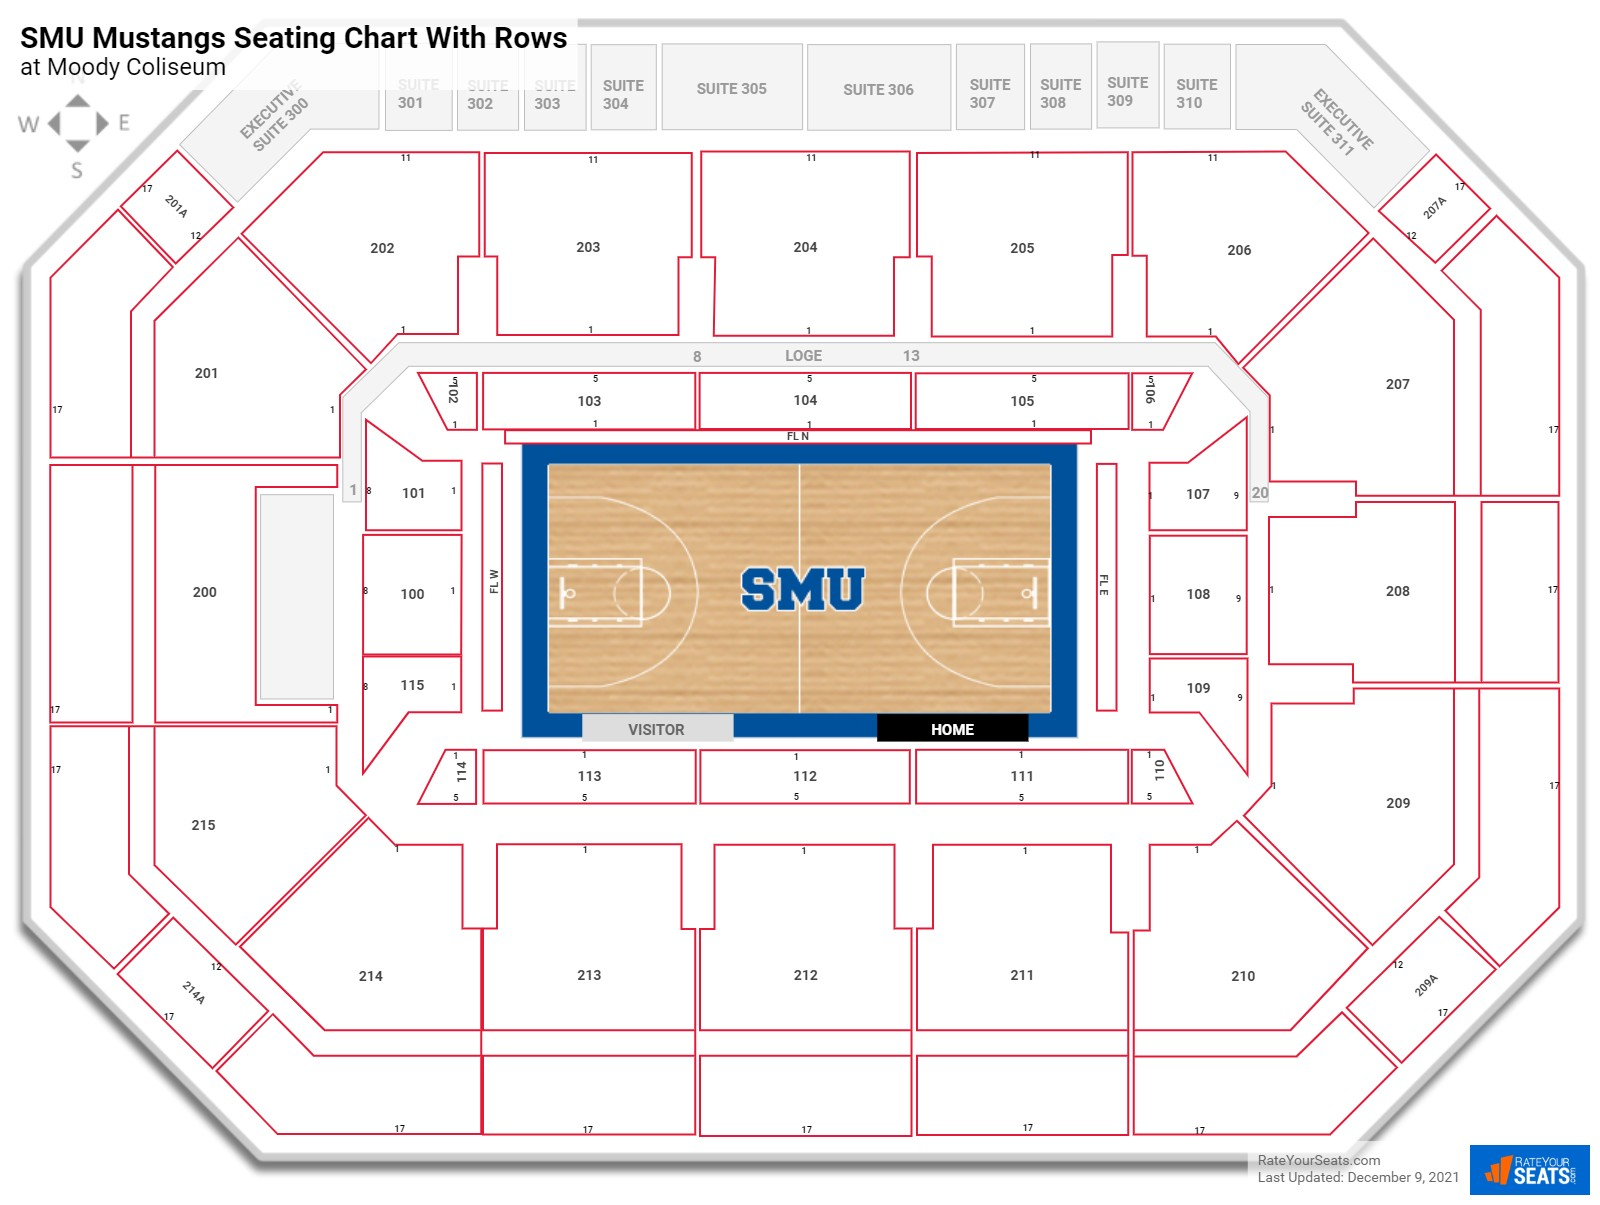 Moody Coliseum seating chart with rows